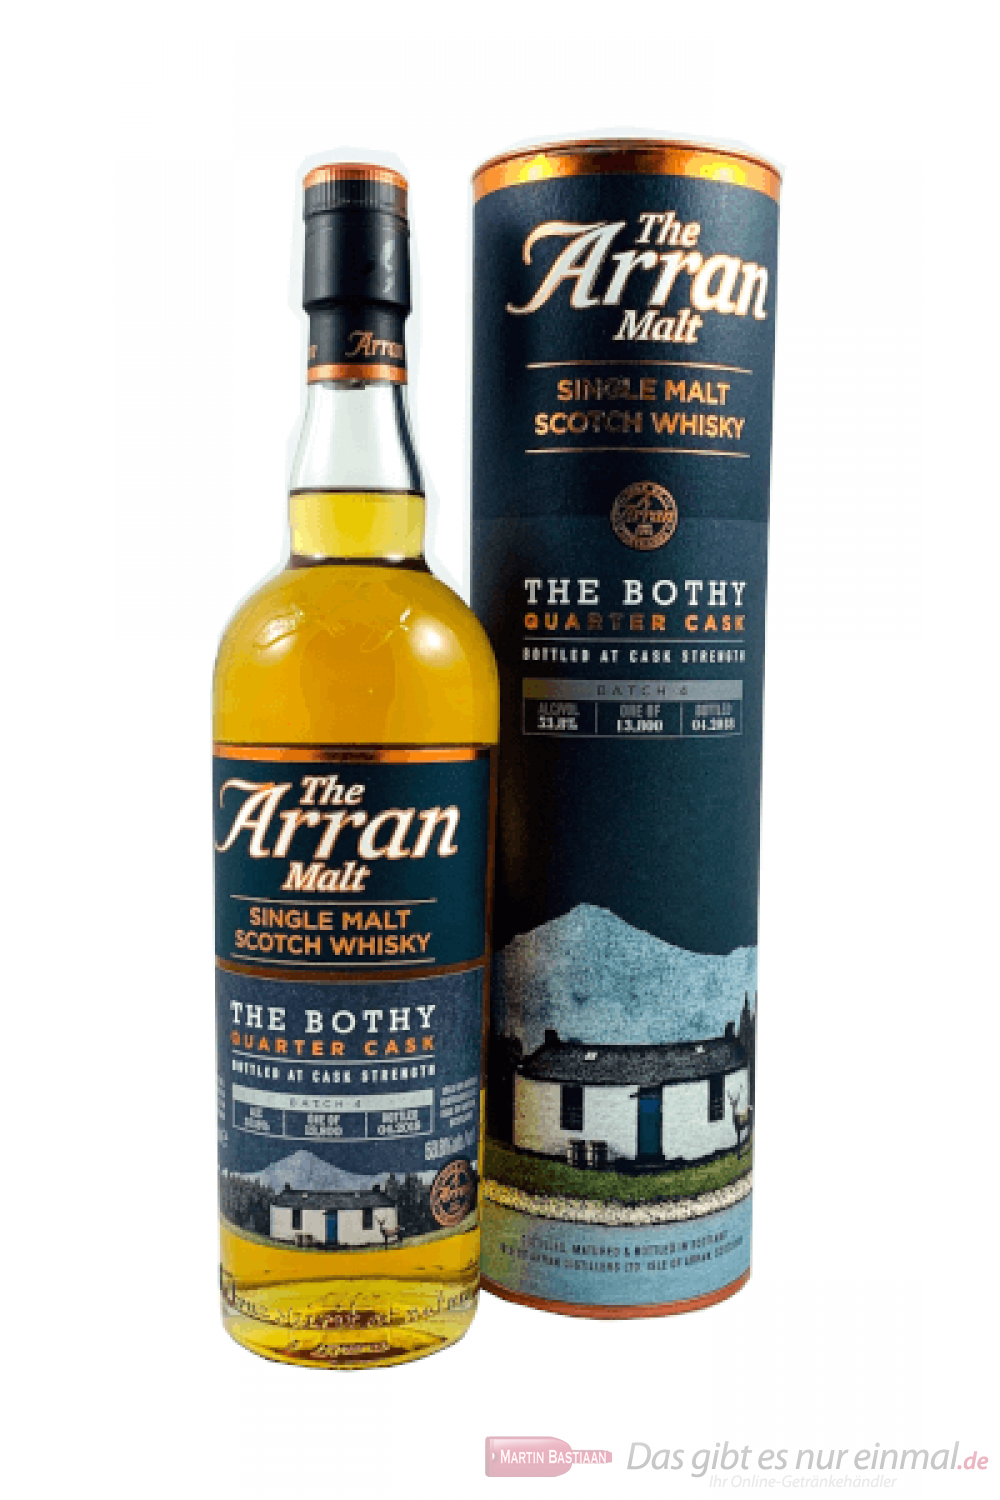 The Arran The Bothy Quarter Cask Batch 4 Scotch Whisky 0,7l